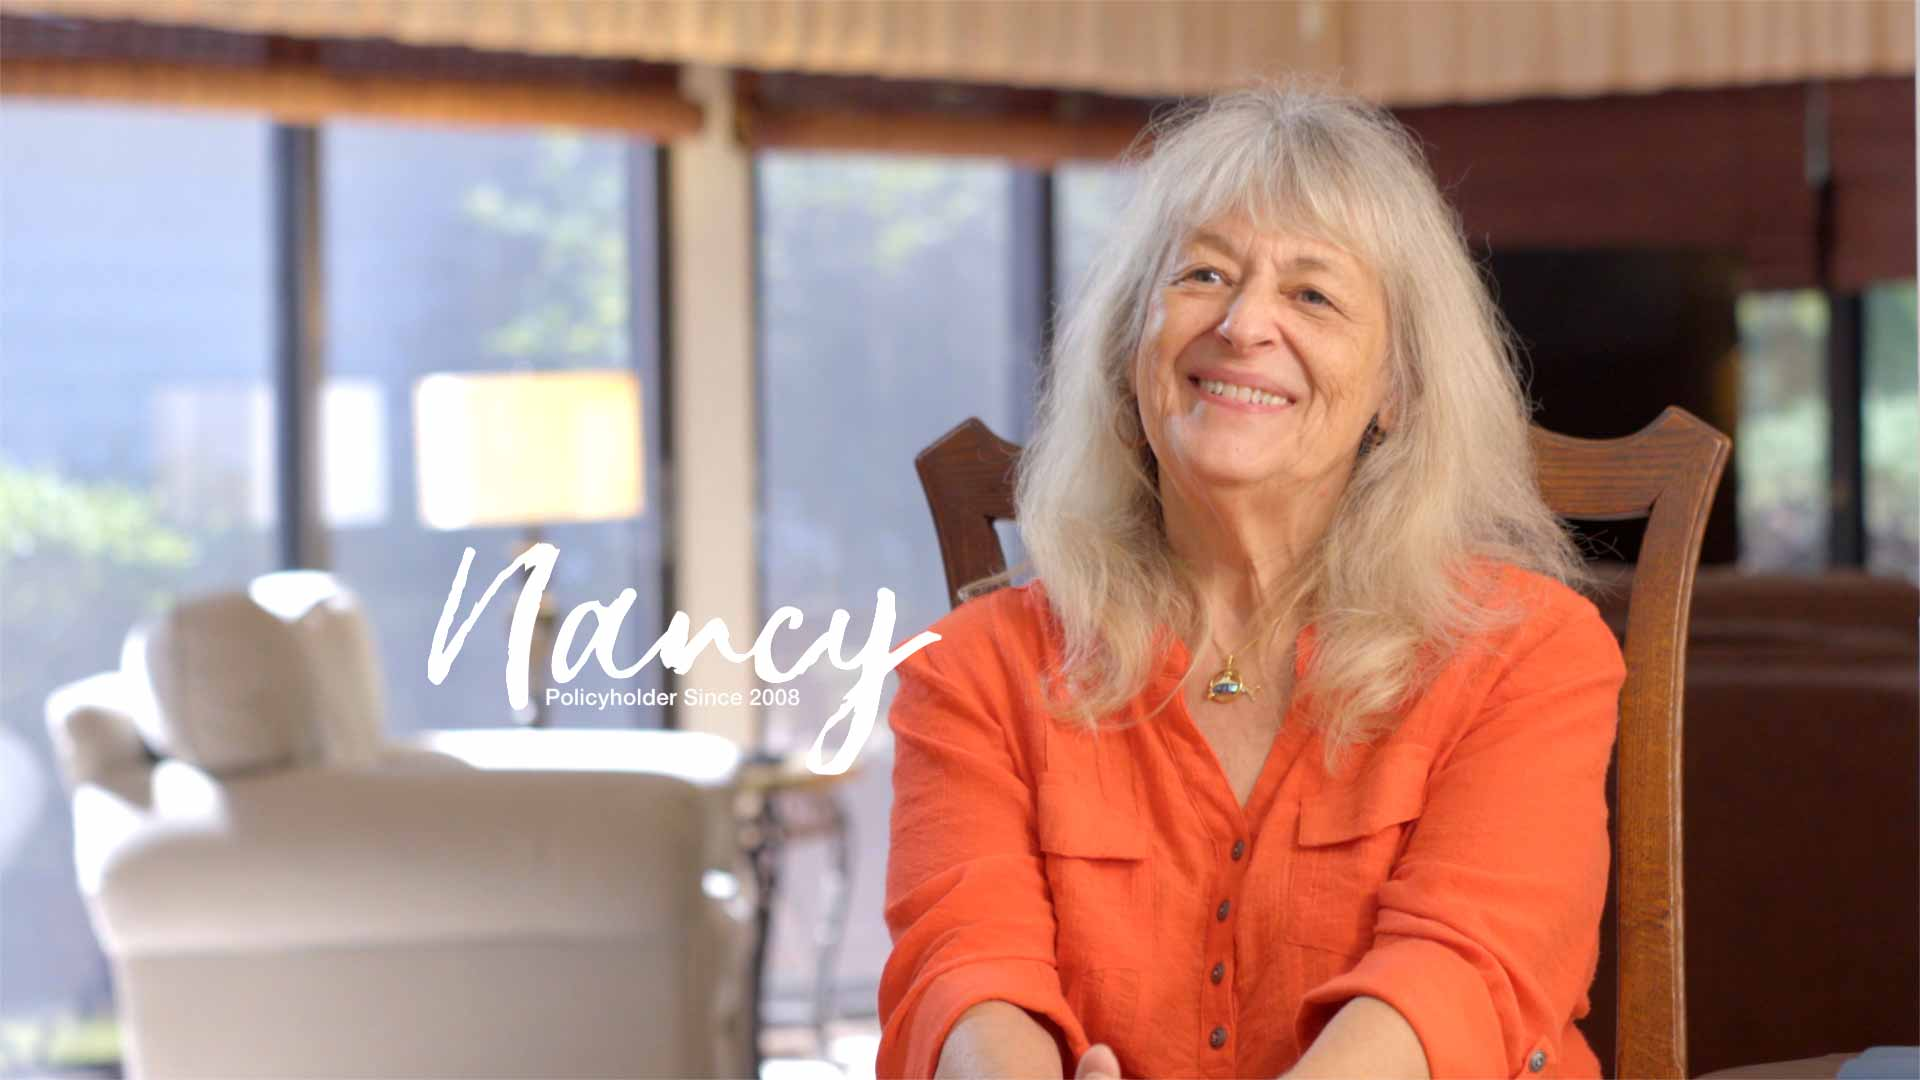 Meet Nancy, living her life GREAT with Great American